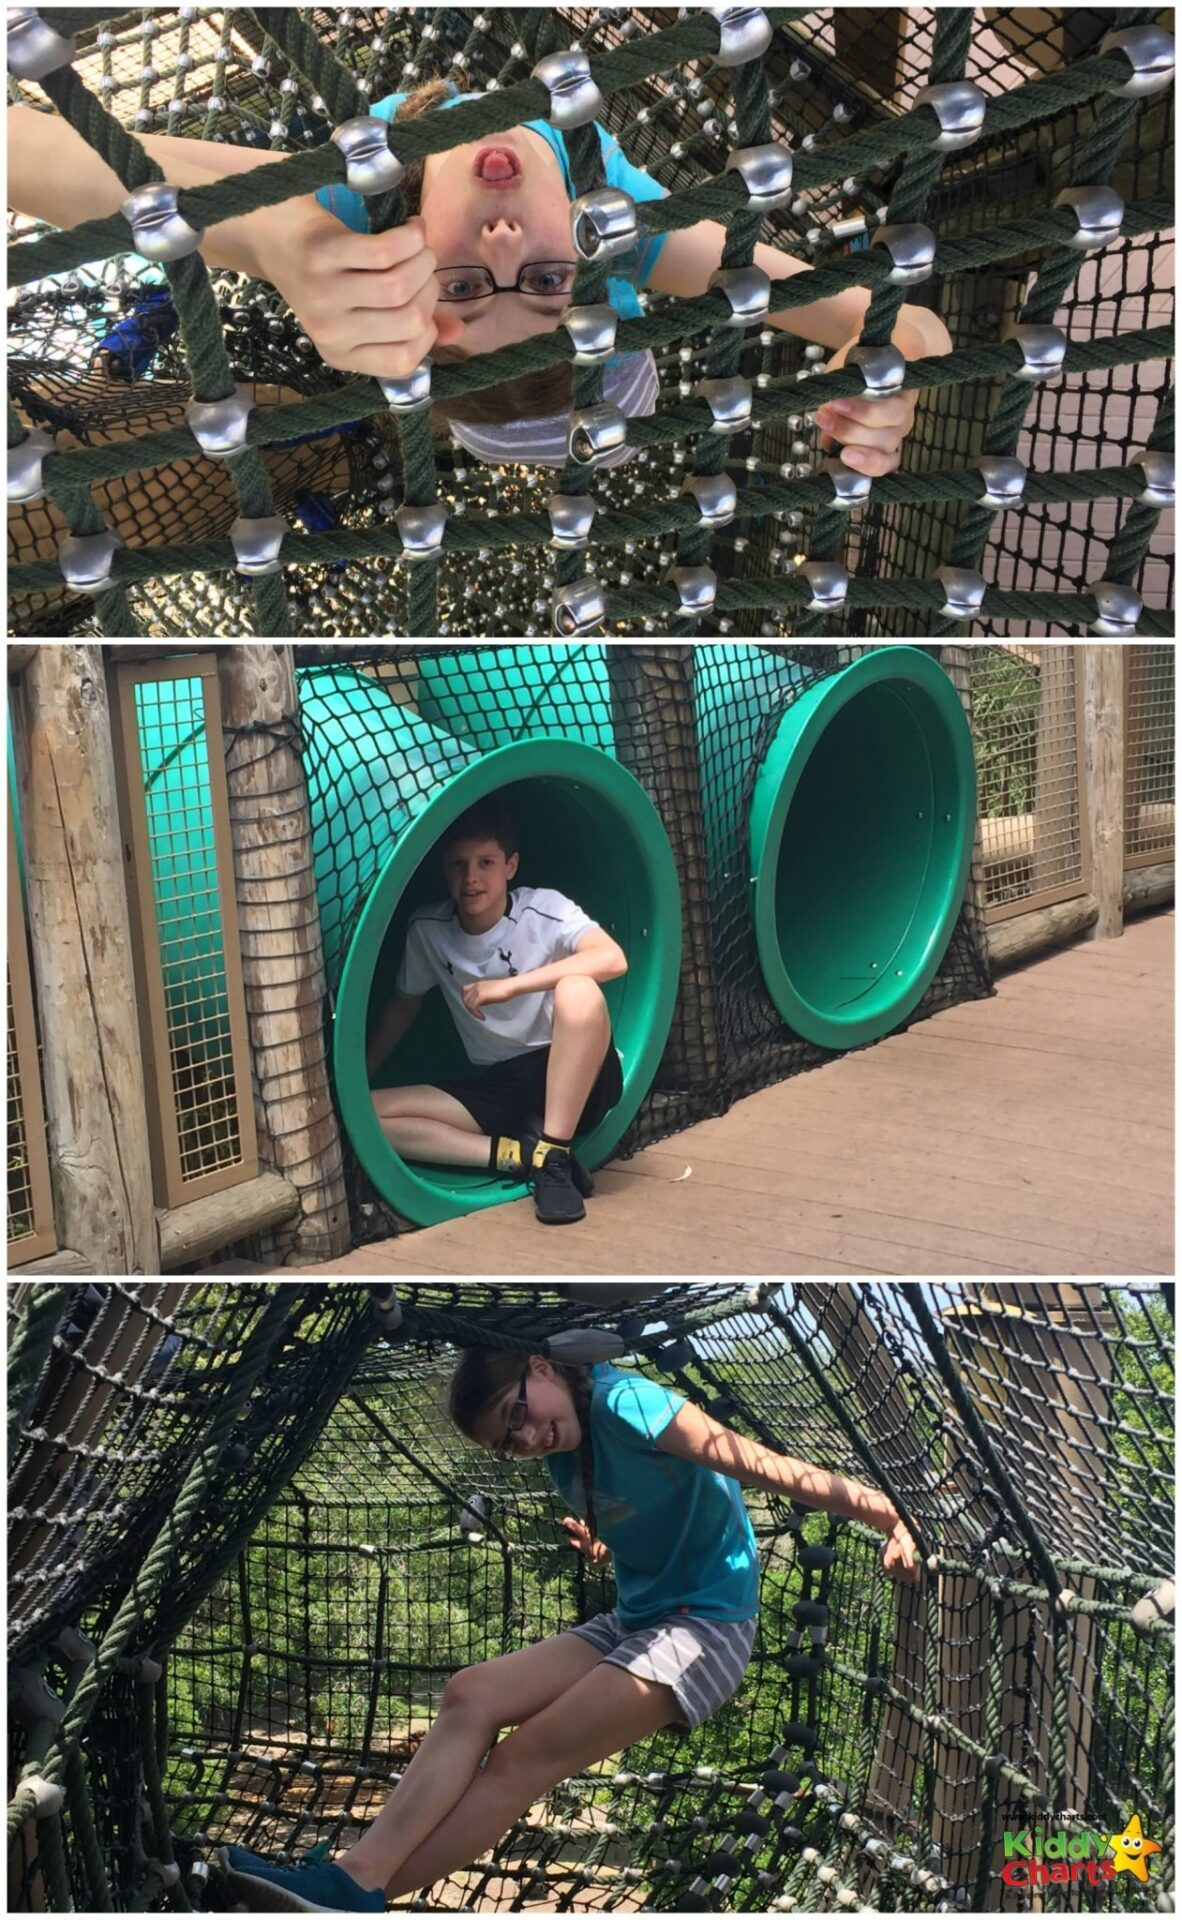 Jungala in Busche Gardens Tampa bay is a great place to monkey around, and just one of the reasons why the kids loved it there. Why not find out some more reasons for going on the site now?